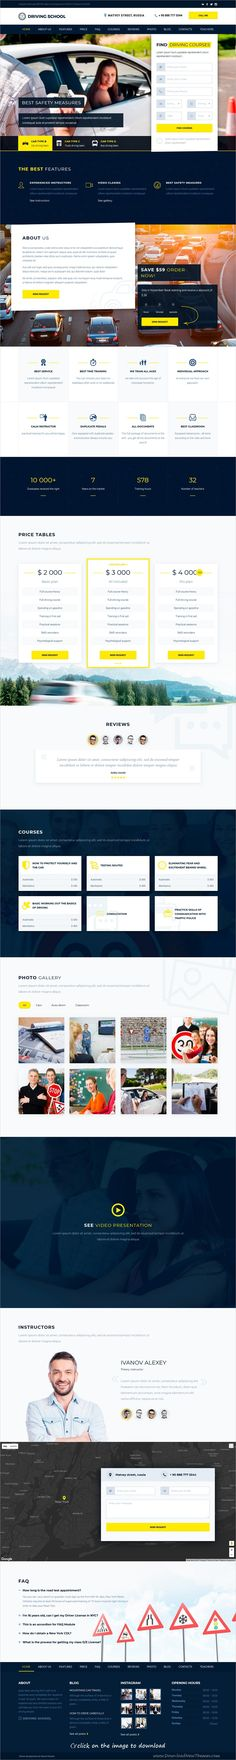 Beautiful and modern design 6in1 responsive #WordPress theme for #driving schools and #training centers website download click on image.